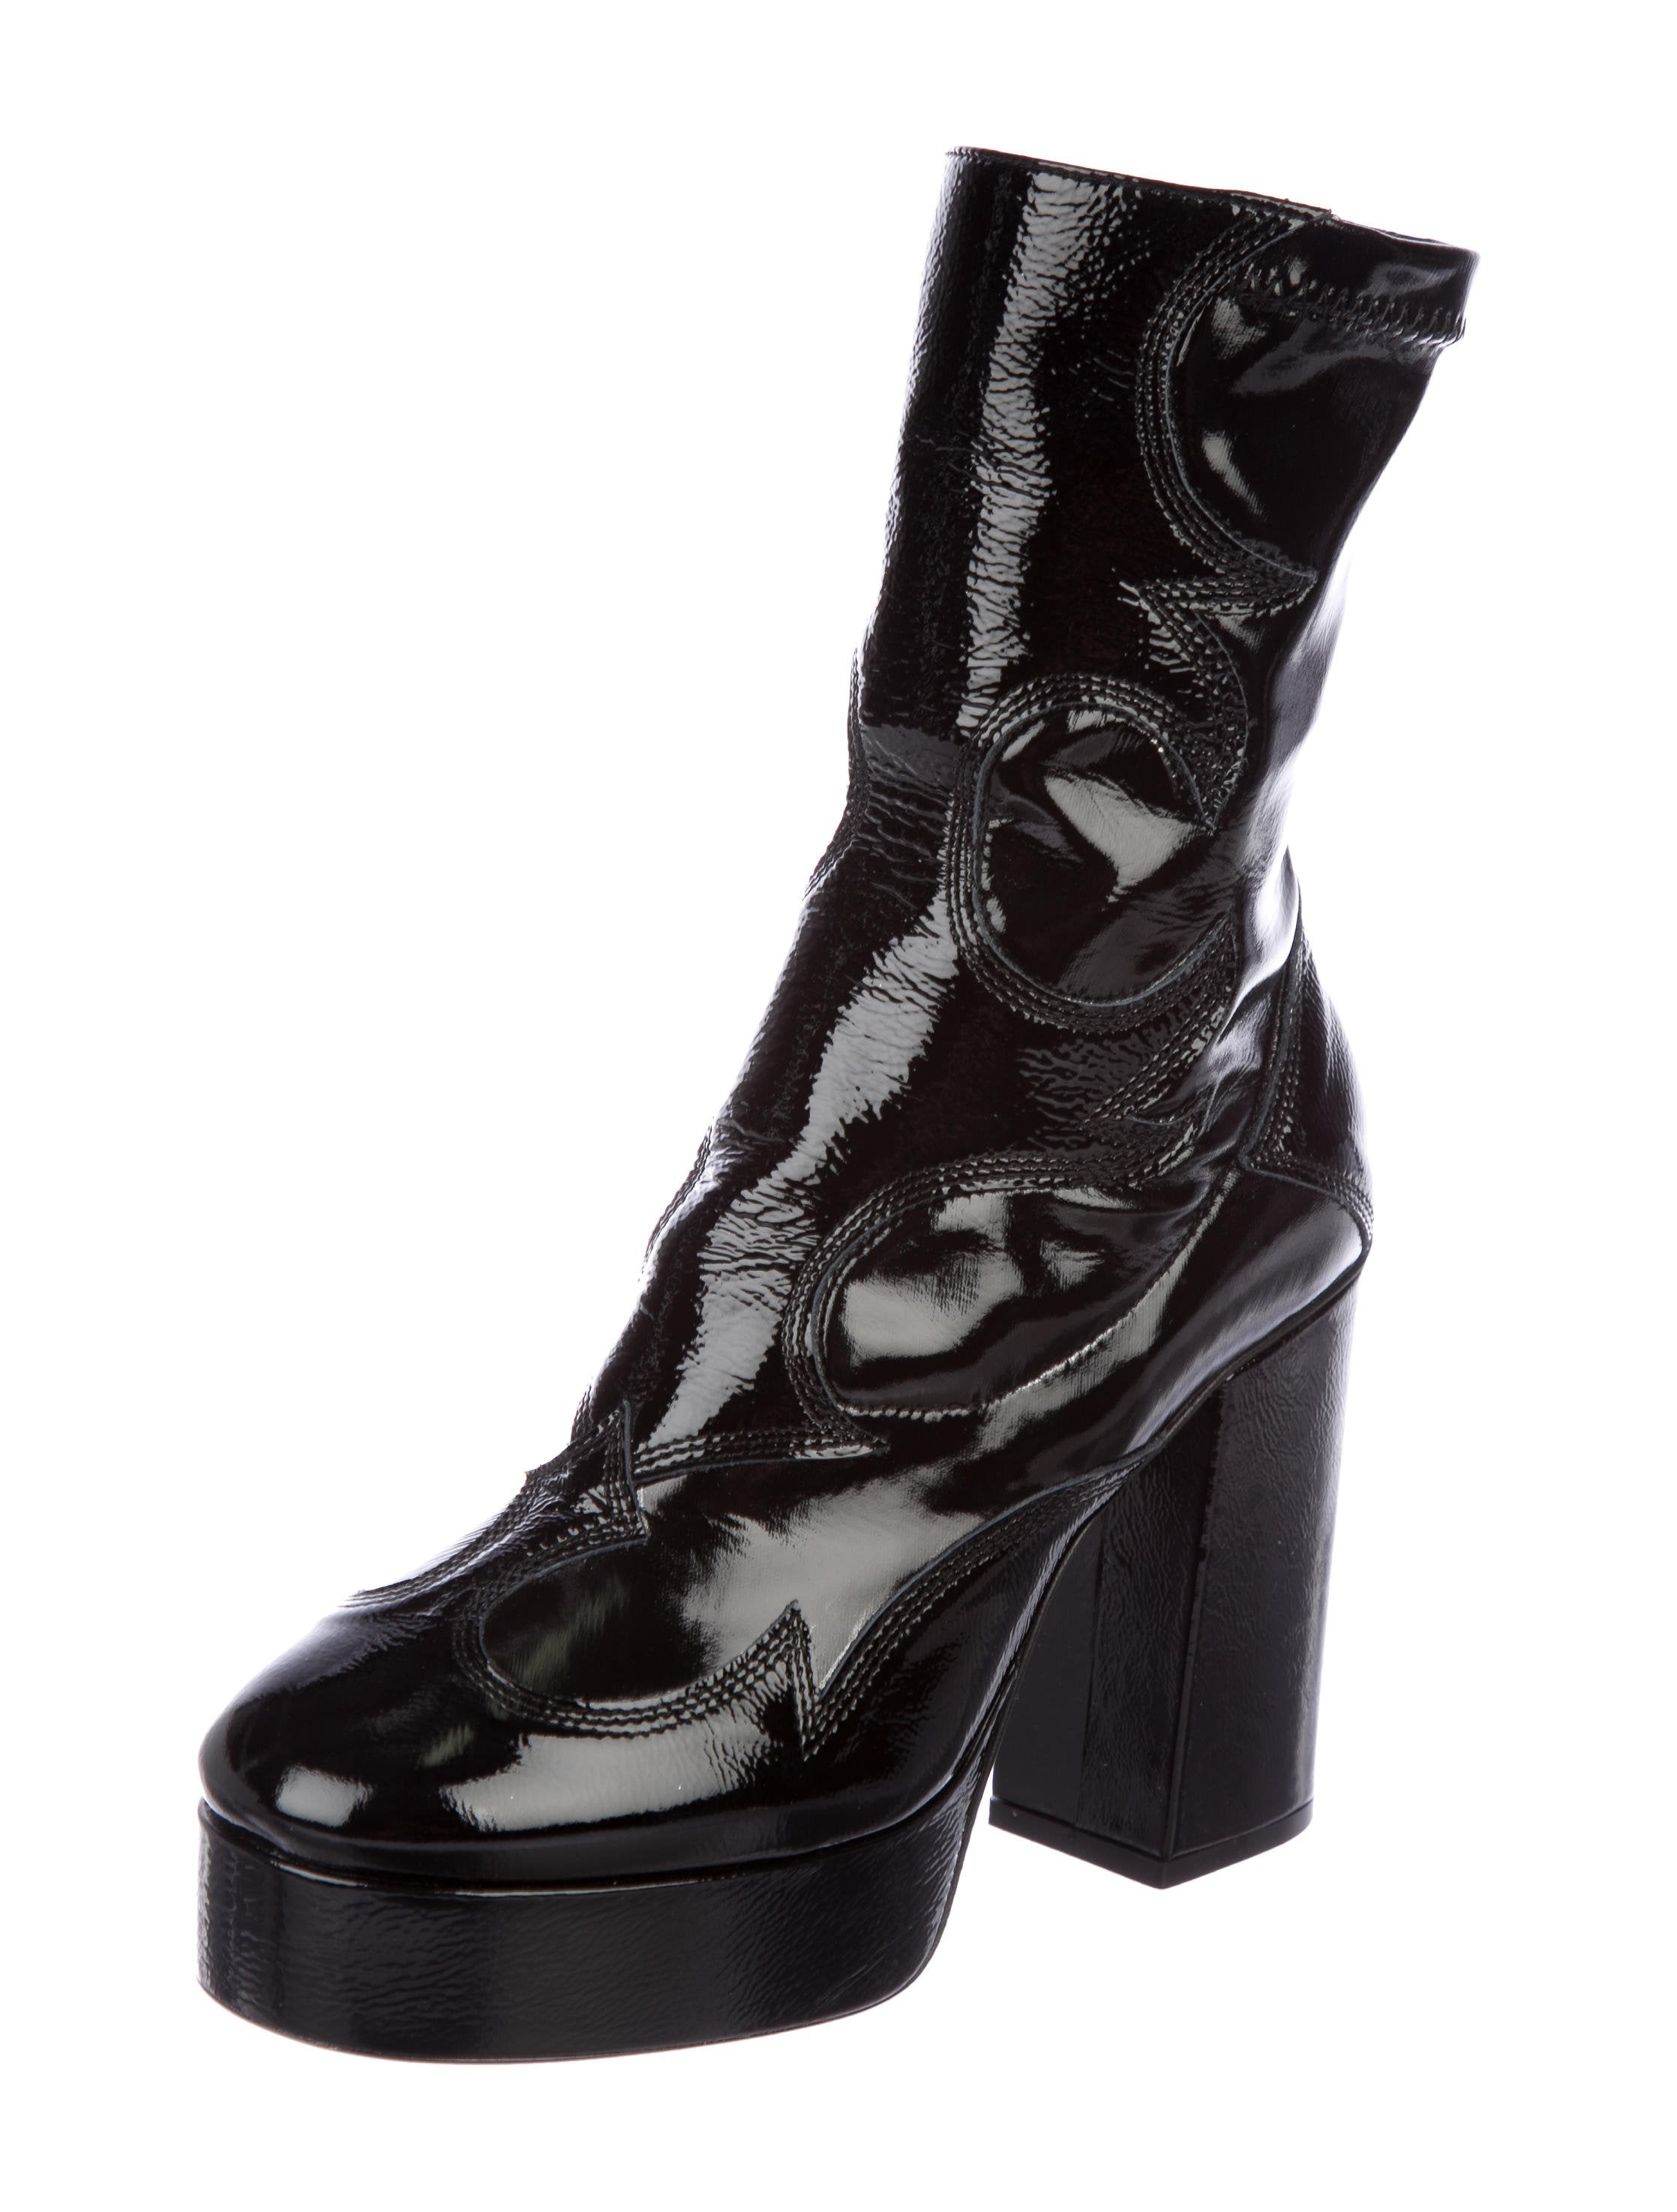 eastbay online visit sale online Alexander McQueen Platform Leather Booties w/ Tags cheap price cost official sale online QCzOtcn